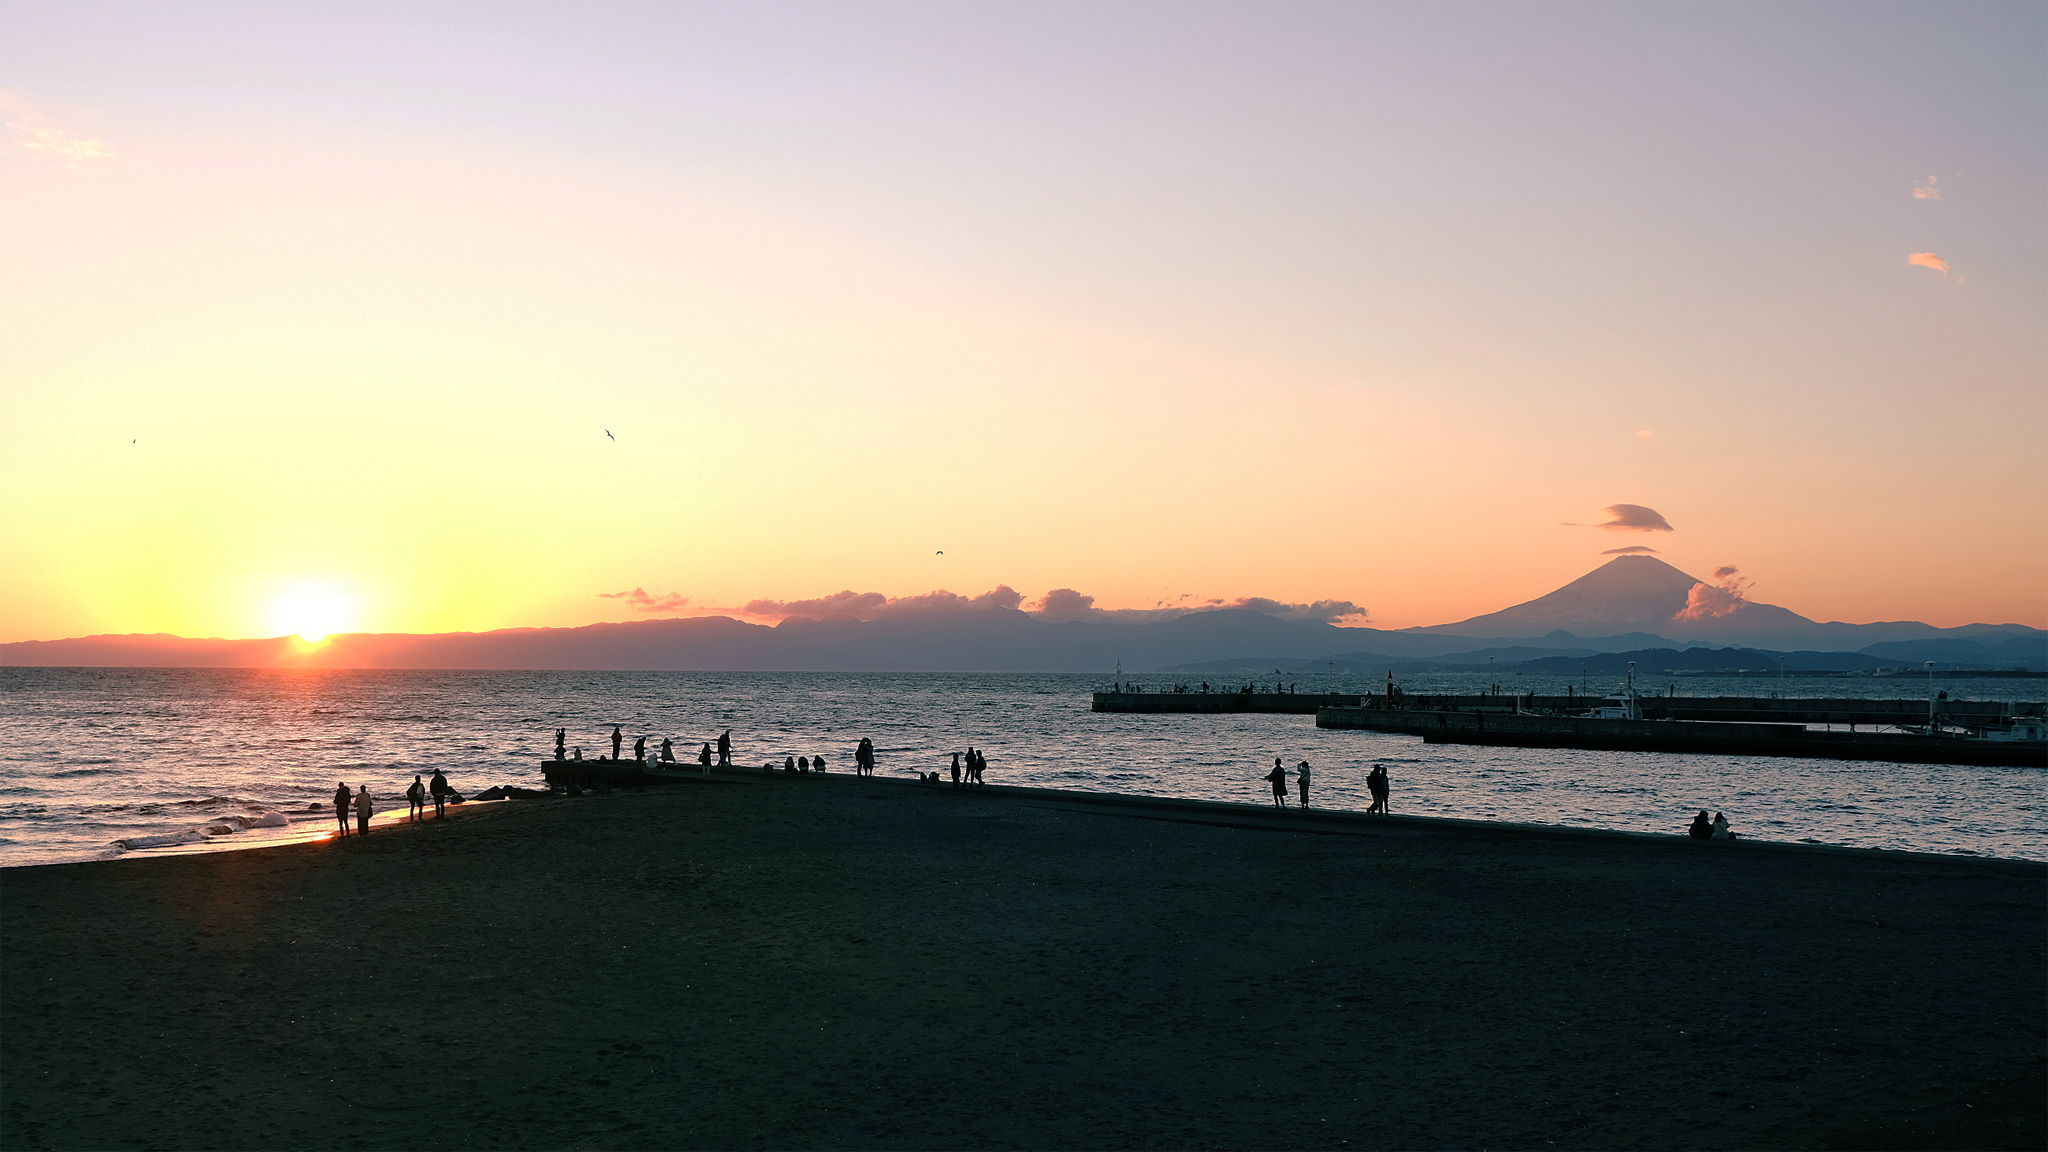 Sunset view of Mt. Fuji with Enoshima beach in the foreground.